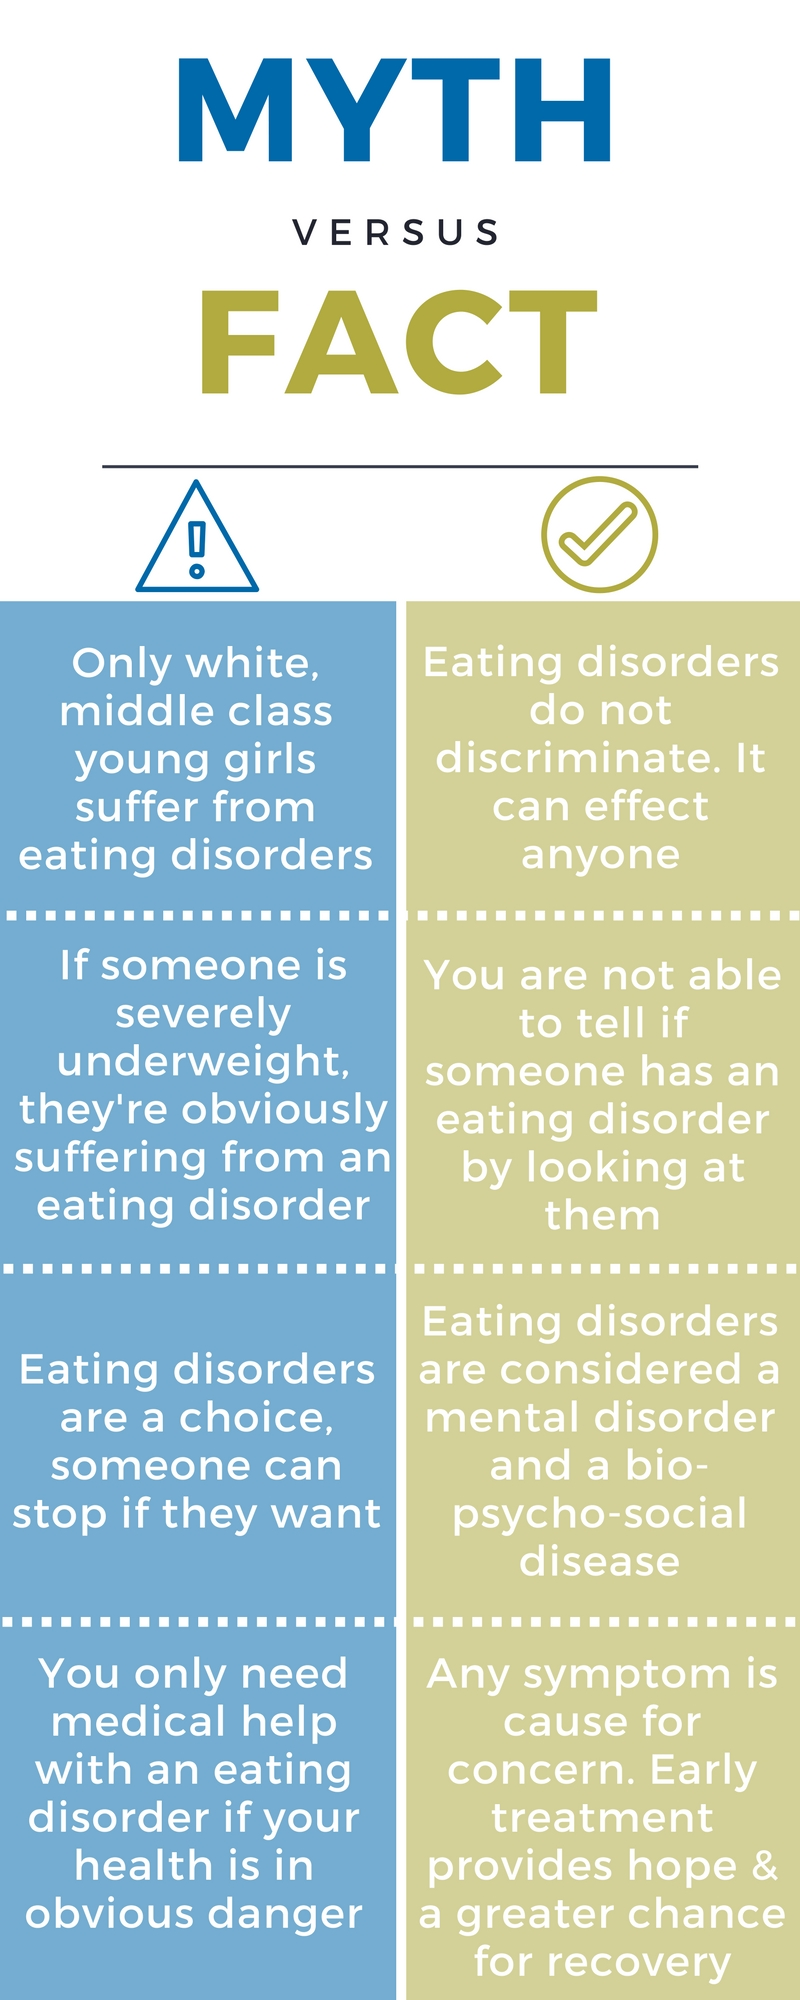 annotated bibiliography on eating disorders People with eating disorders show the greatest stroop interference for food- and body- related words nowadays, health and fitness is the goal, so when people hear negative body words their self-esteem is affected.